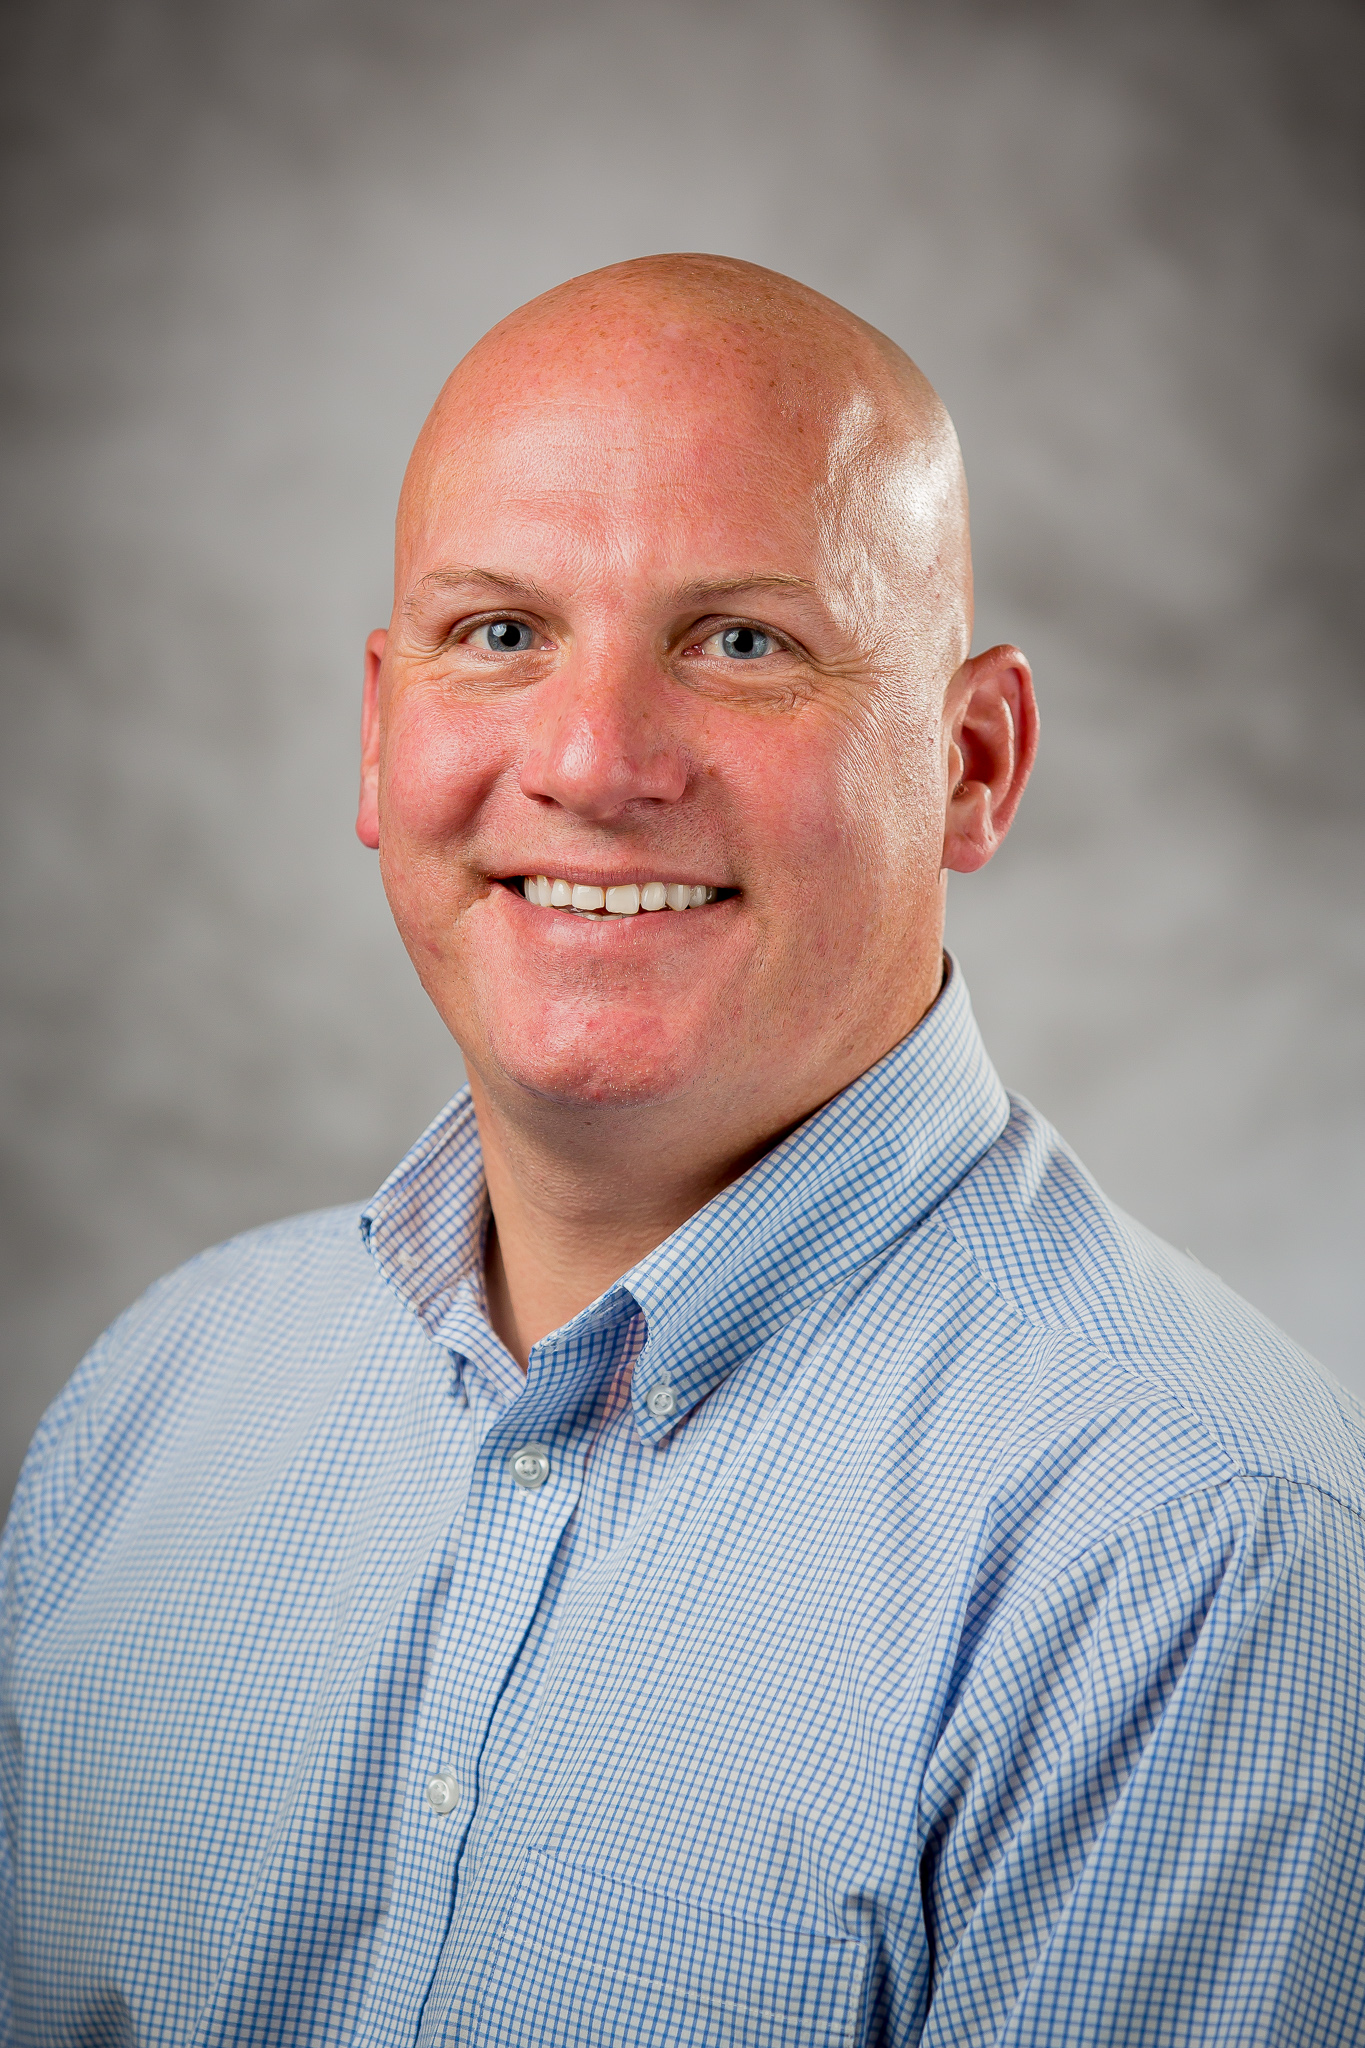 picture of a bald man wearing a blue button up shirt